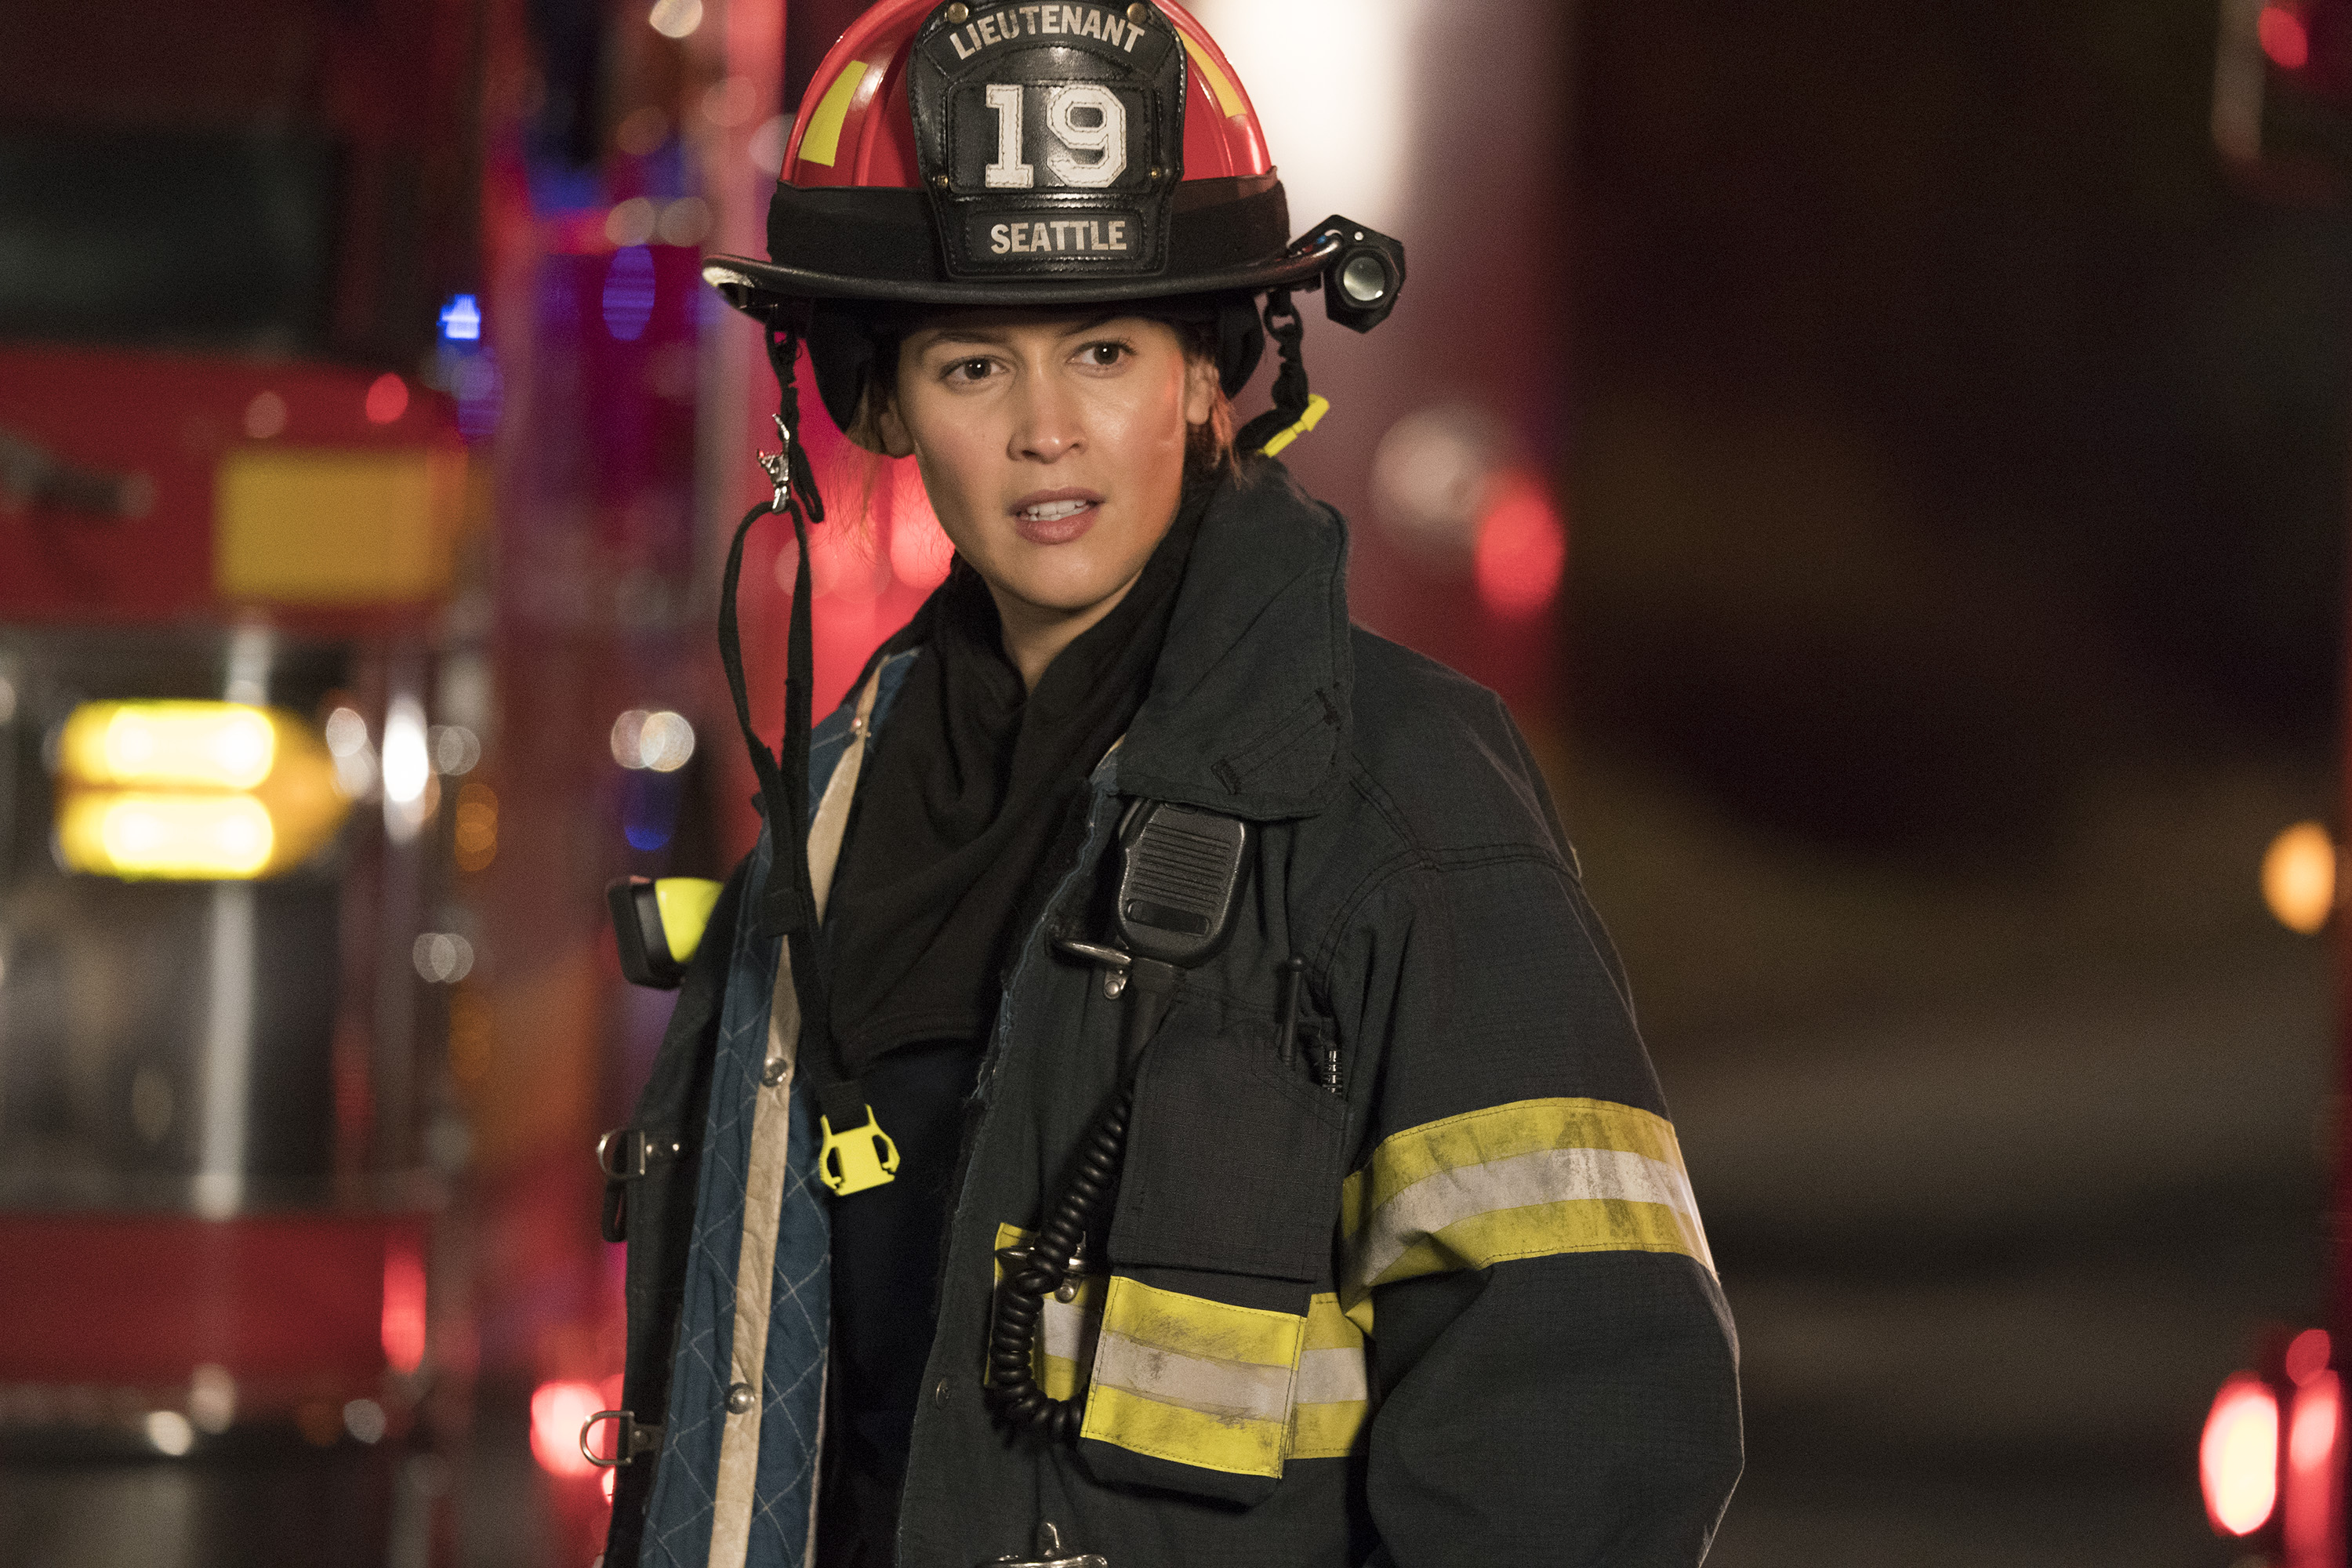 TRAILER: 'Grey's Anatomy' Spin-Off 'Station 19' Stars Jaina Lee Ortiz as a Firefighter